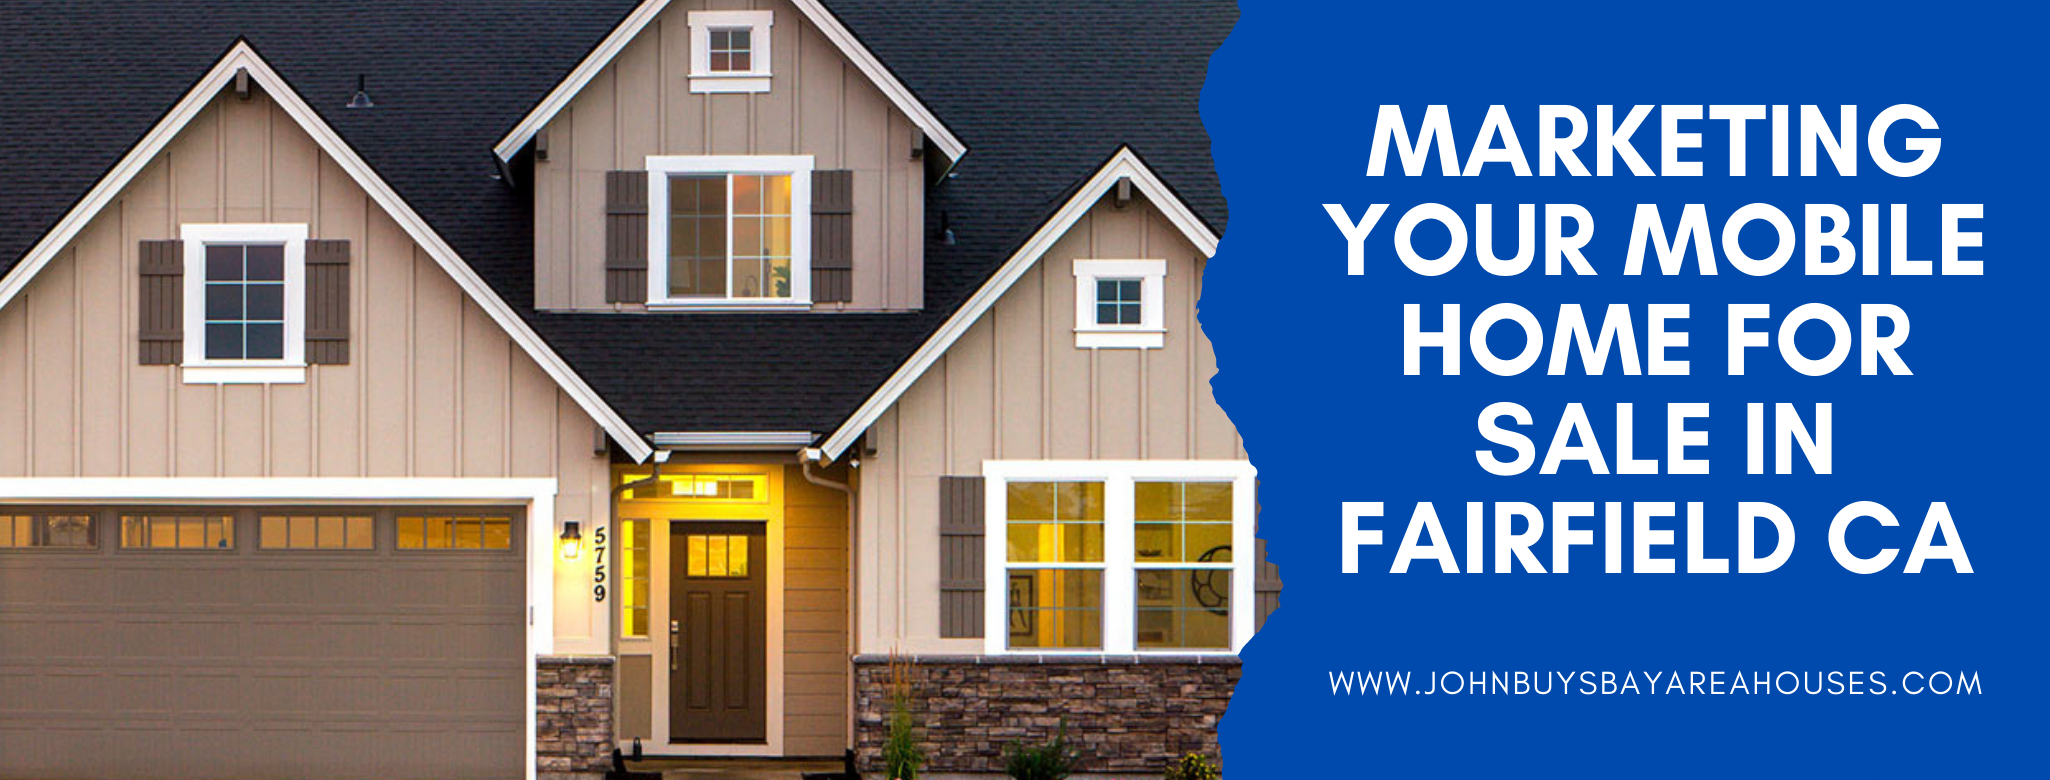 We buy properties in Fairfield CA